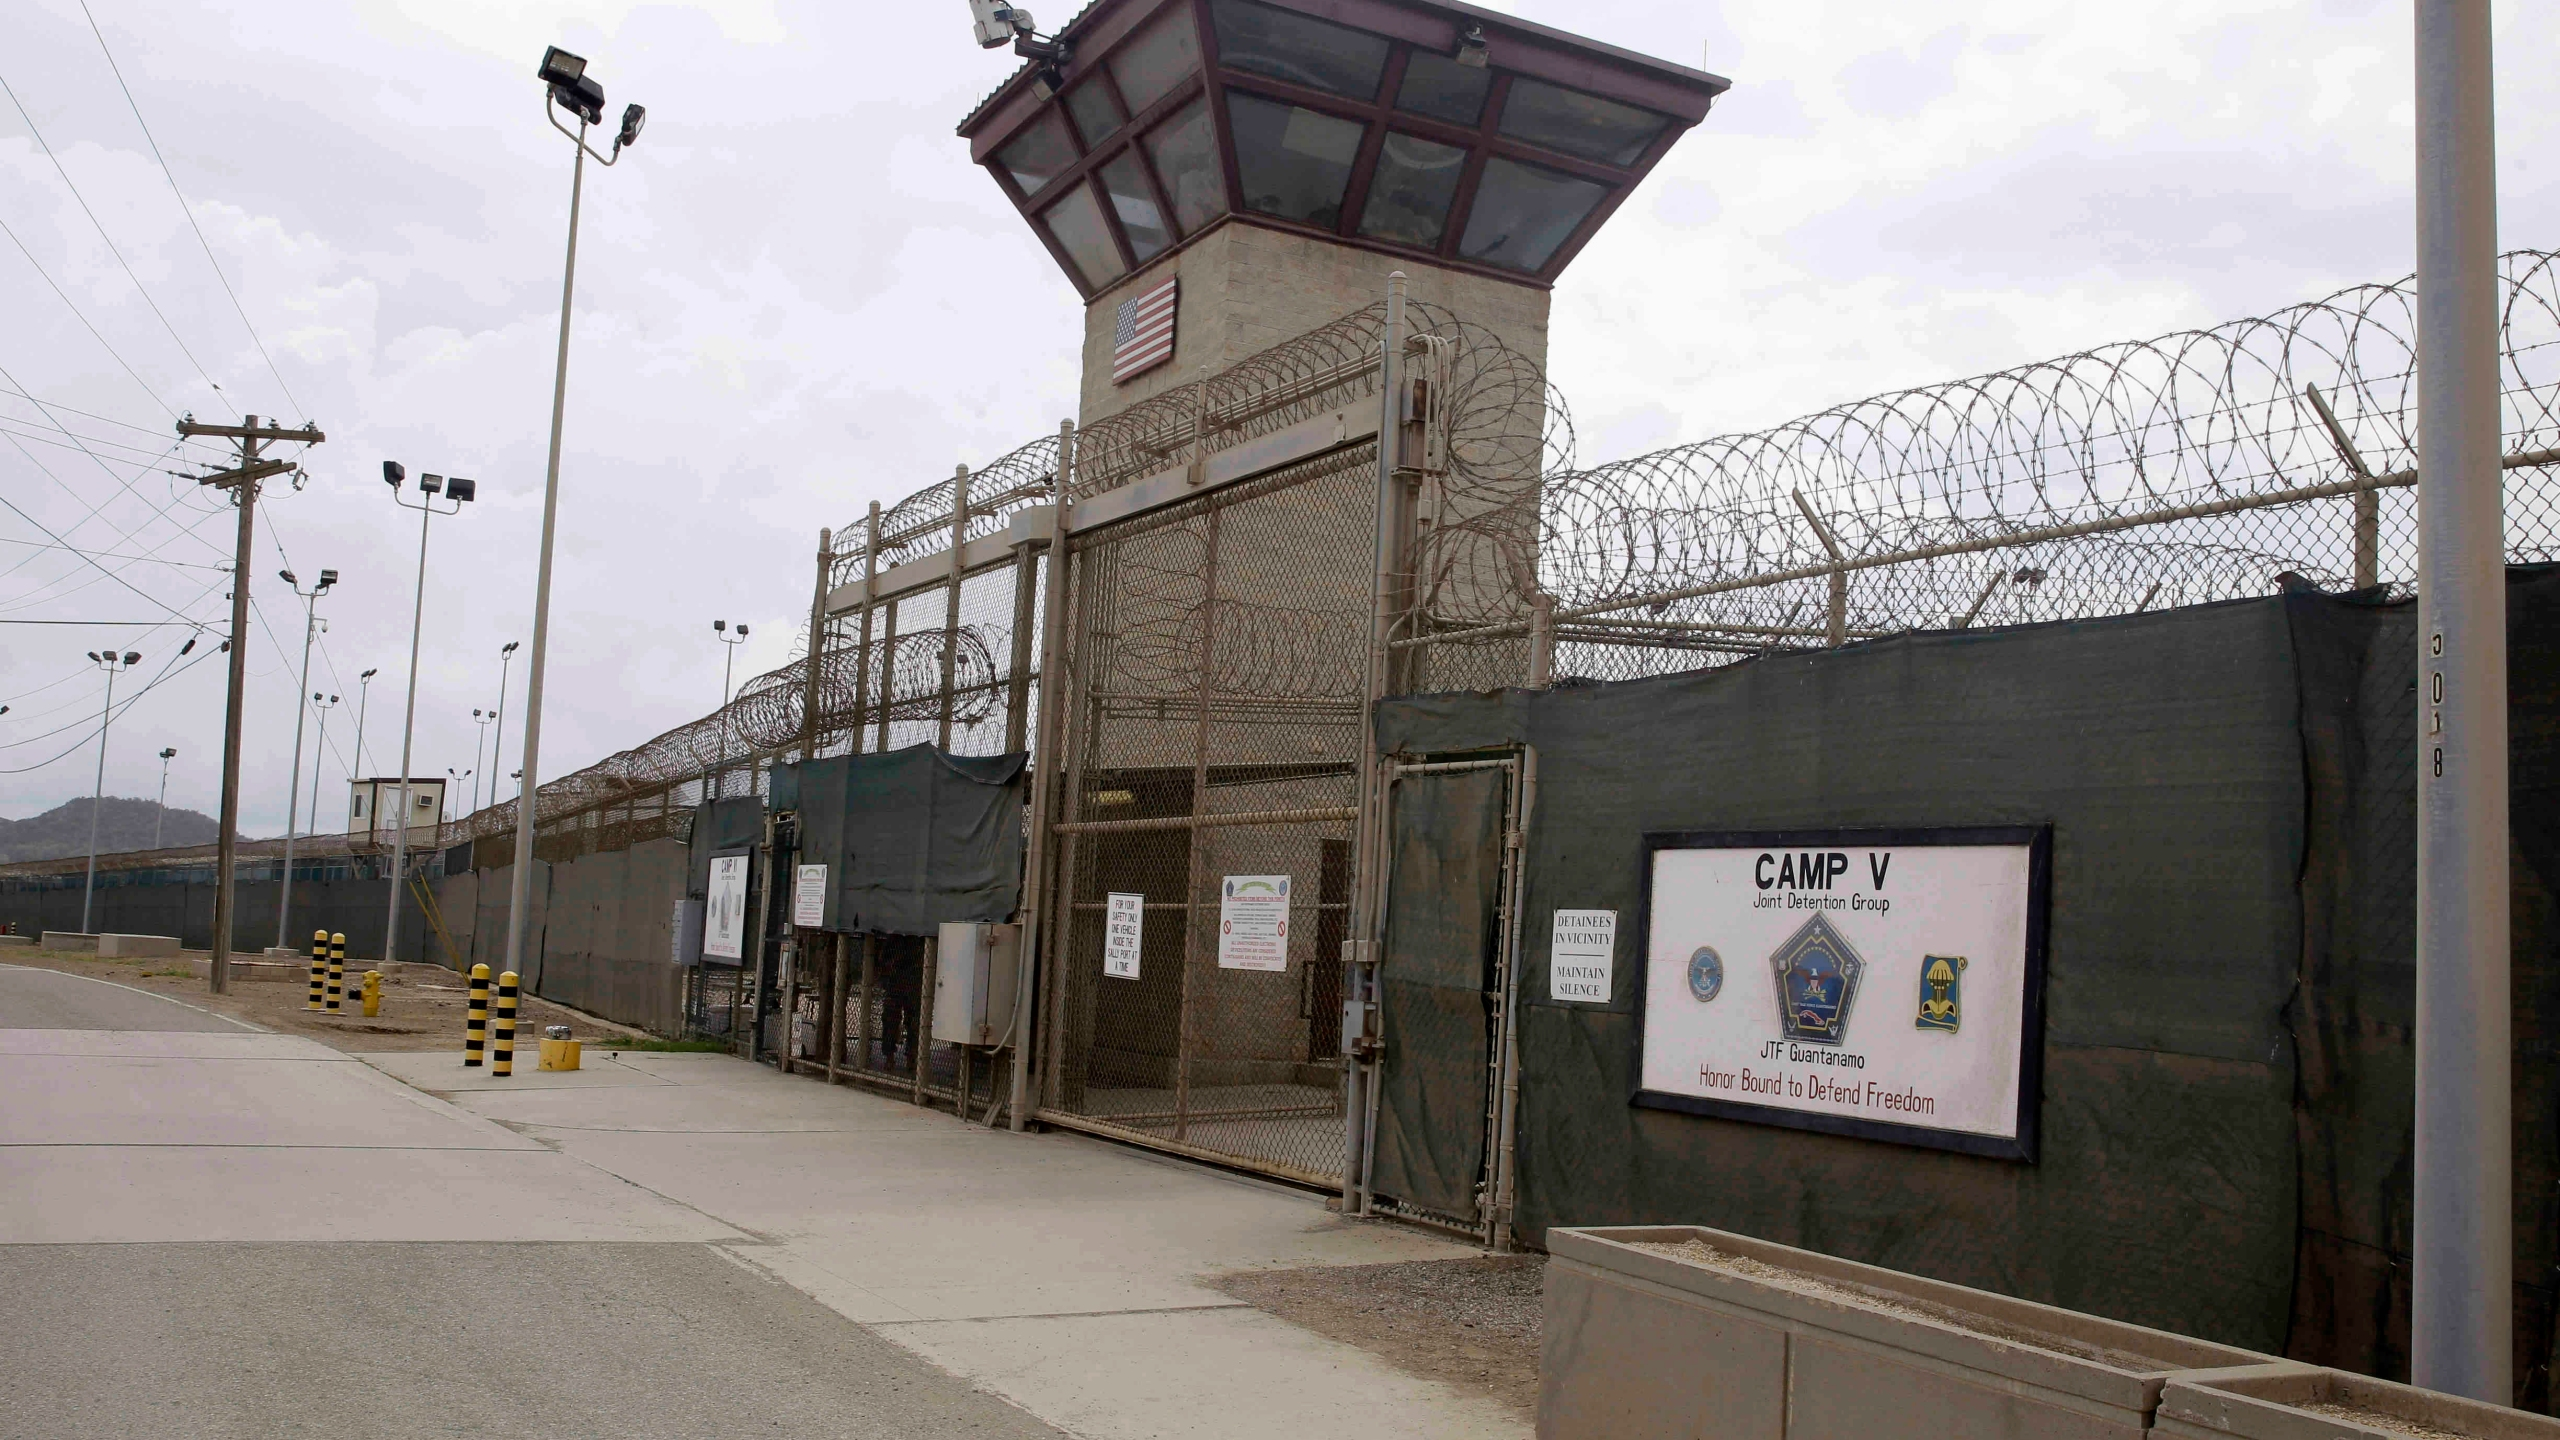 In this June 7, 2014, file photo, the entrance to Camp 5 and Camp 6 at the U.S. military's Guantanamo Bay detention center, at Guantanamo Bay Naval Base, Cuba. (AP Photo/Ben Fox, File)